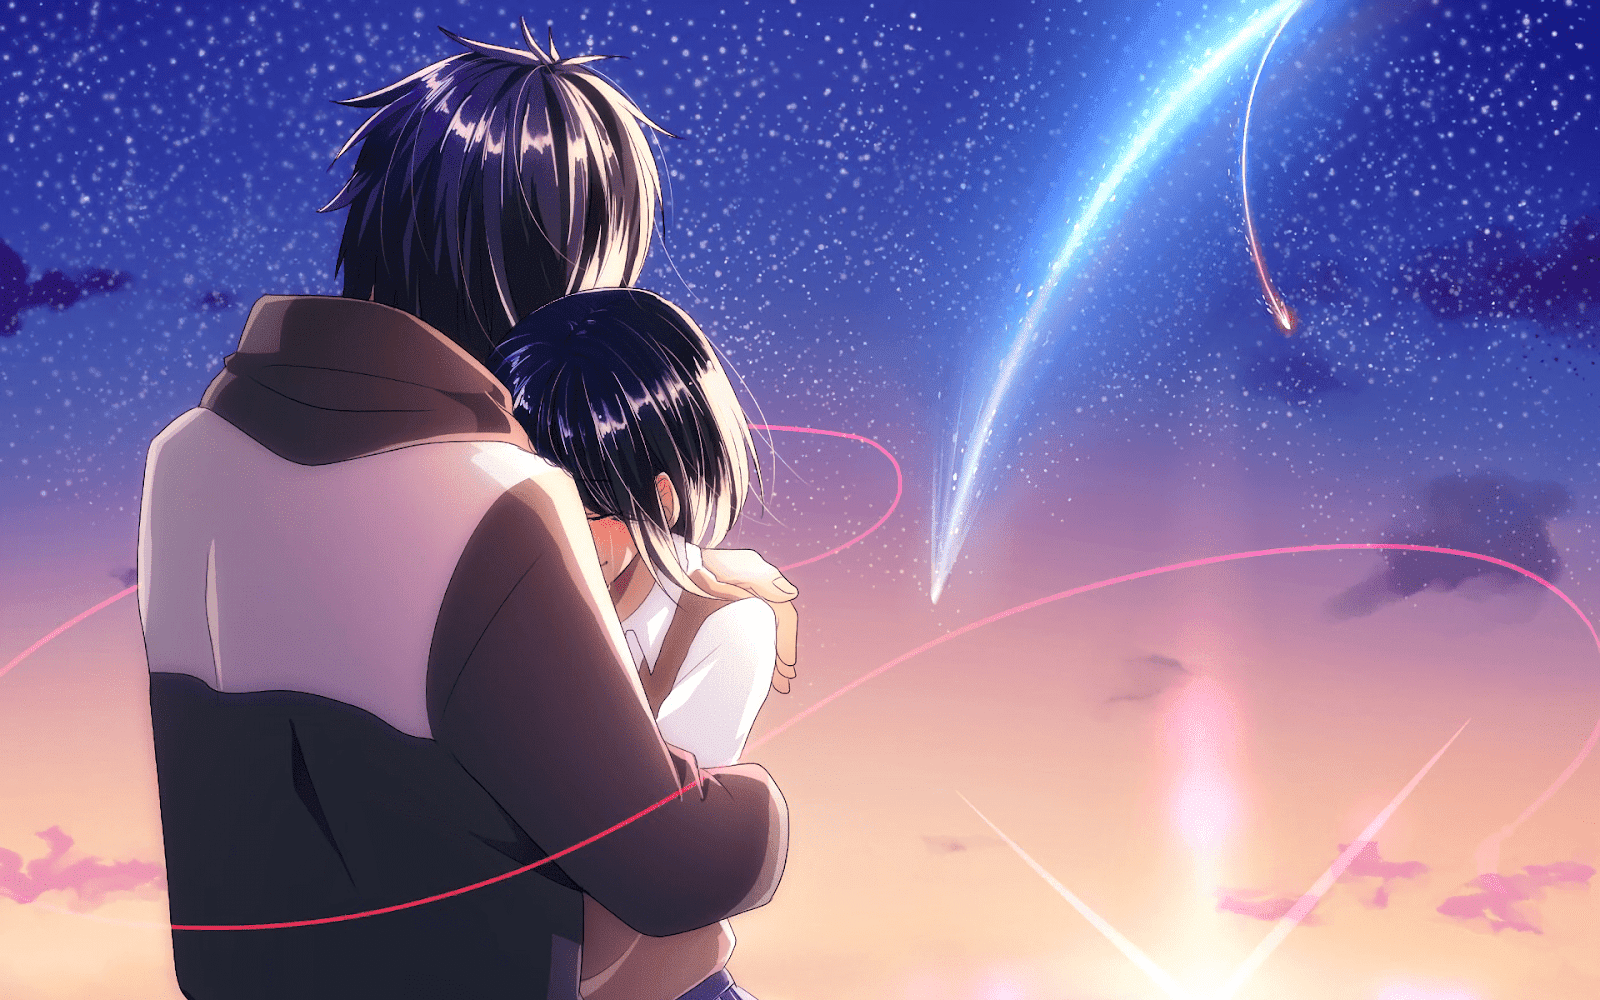 AowVN%2B%25285%2529 - [ Hình Nền ] Anime Your Name. - Kimi no Nawa full HD cực đẹp | Anime Wallpaper